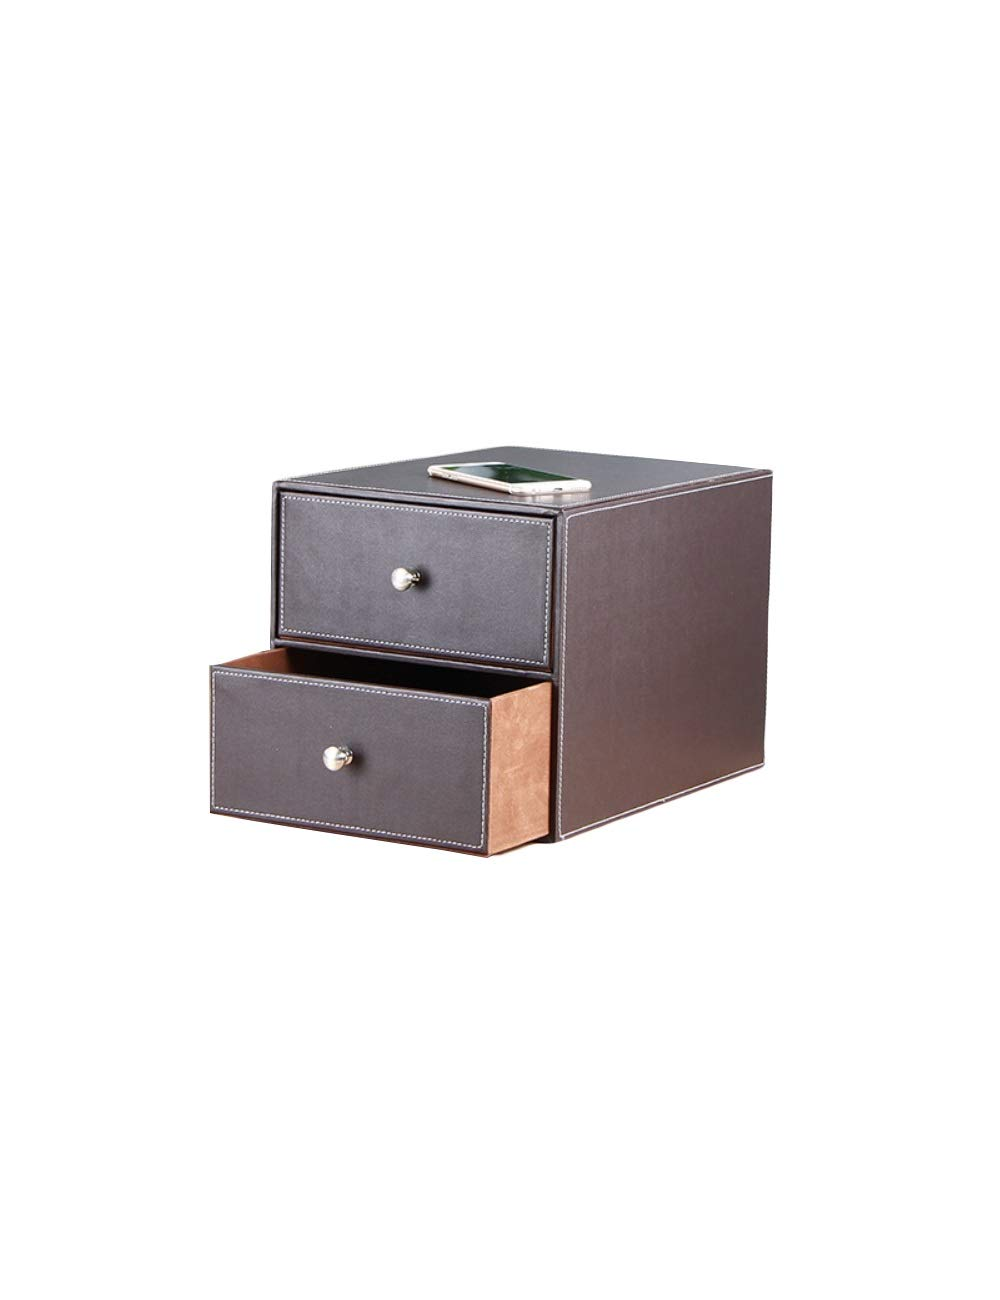 File Cabinet Family Desk Decoration Storage Box 2 Drawers Environmentally Friendly Leather Desk Organizer Filing cabinets